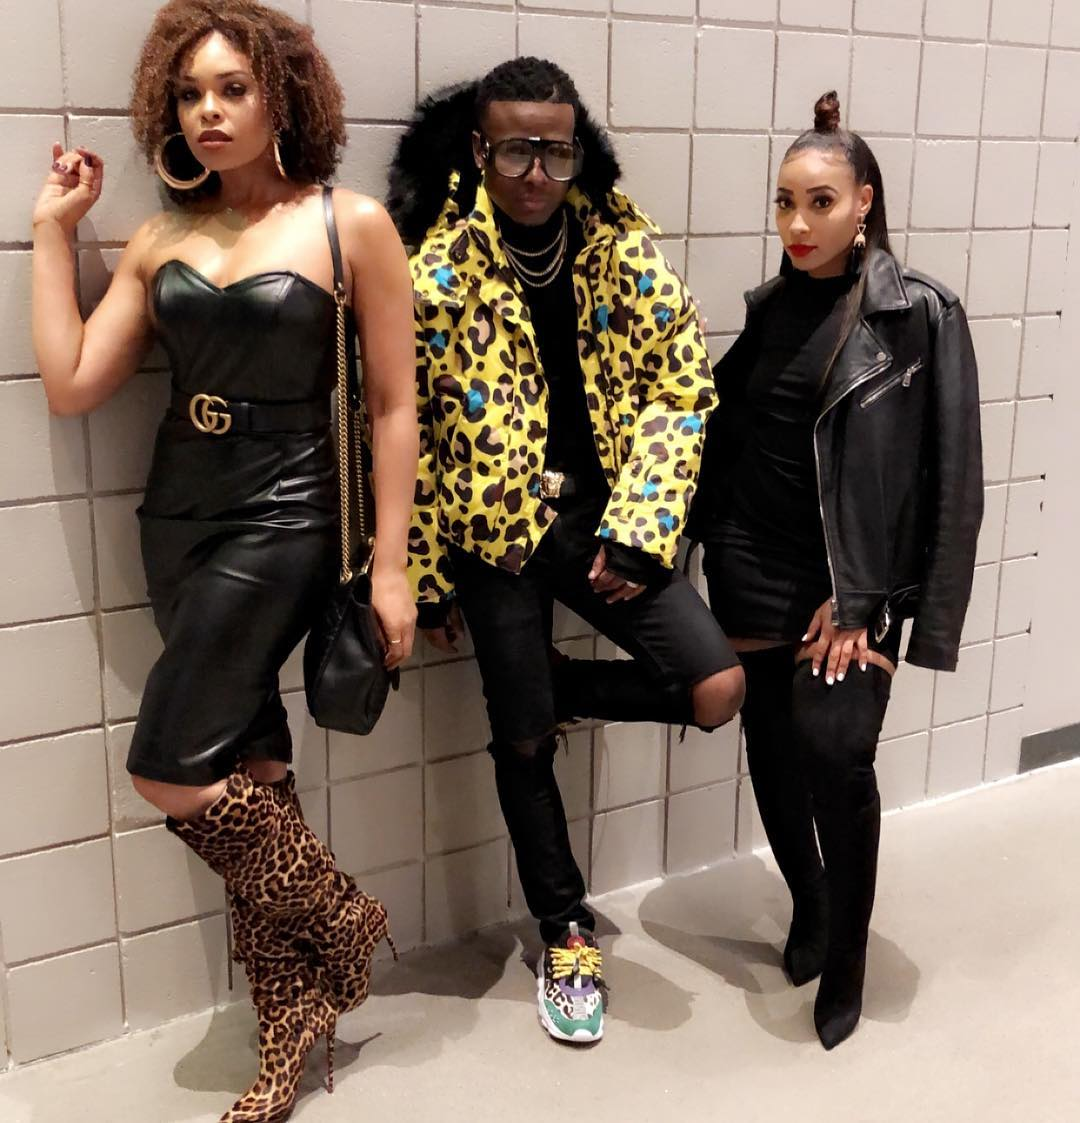 Concert Vibes w/ Demetria McKinney and Dallas - December 7, 2018